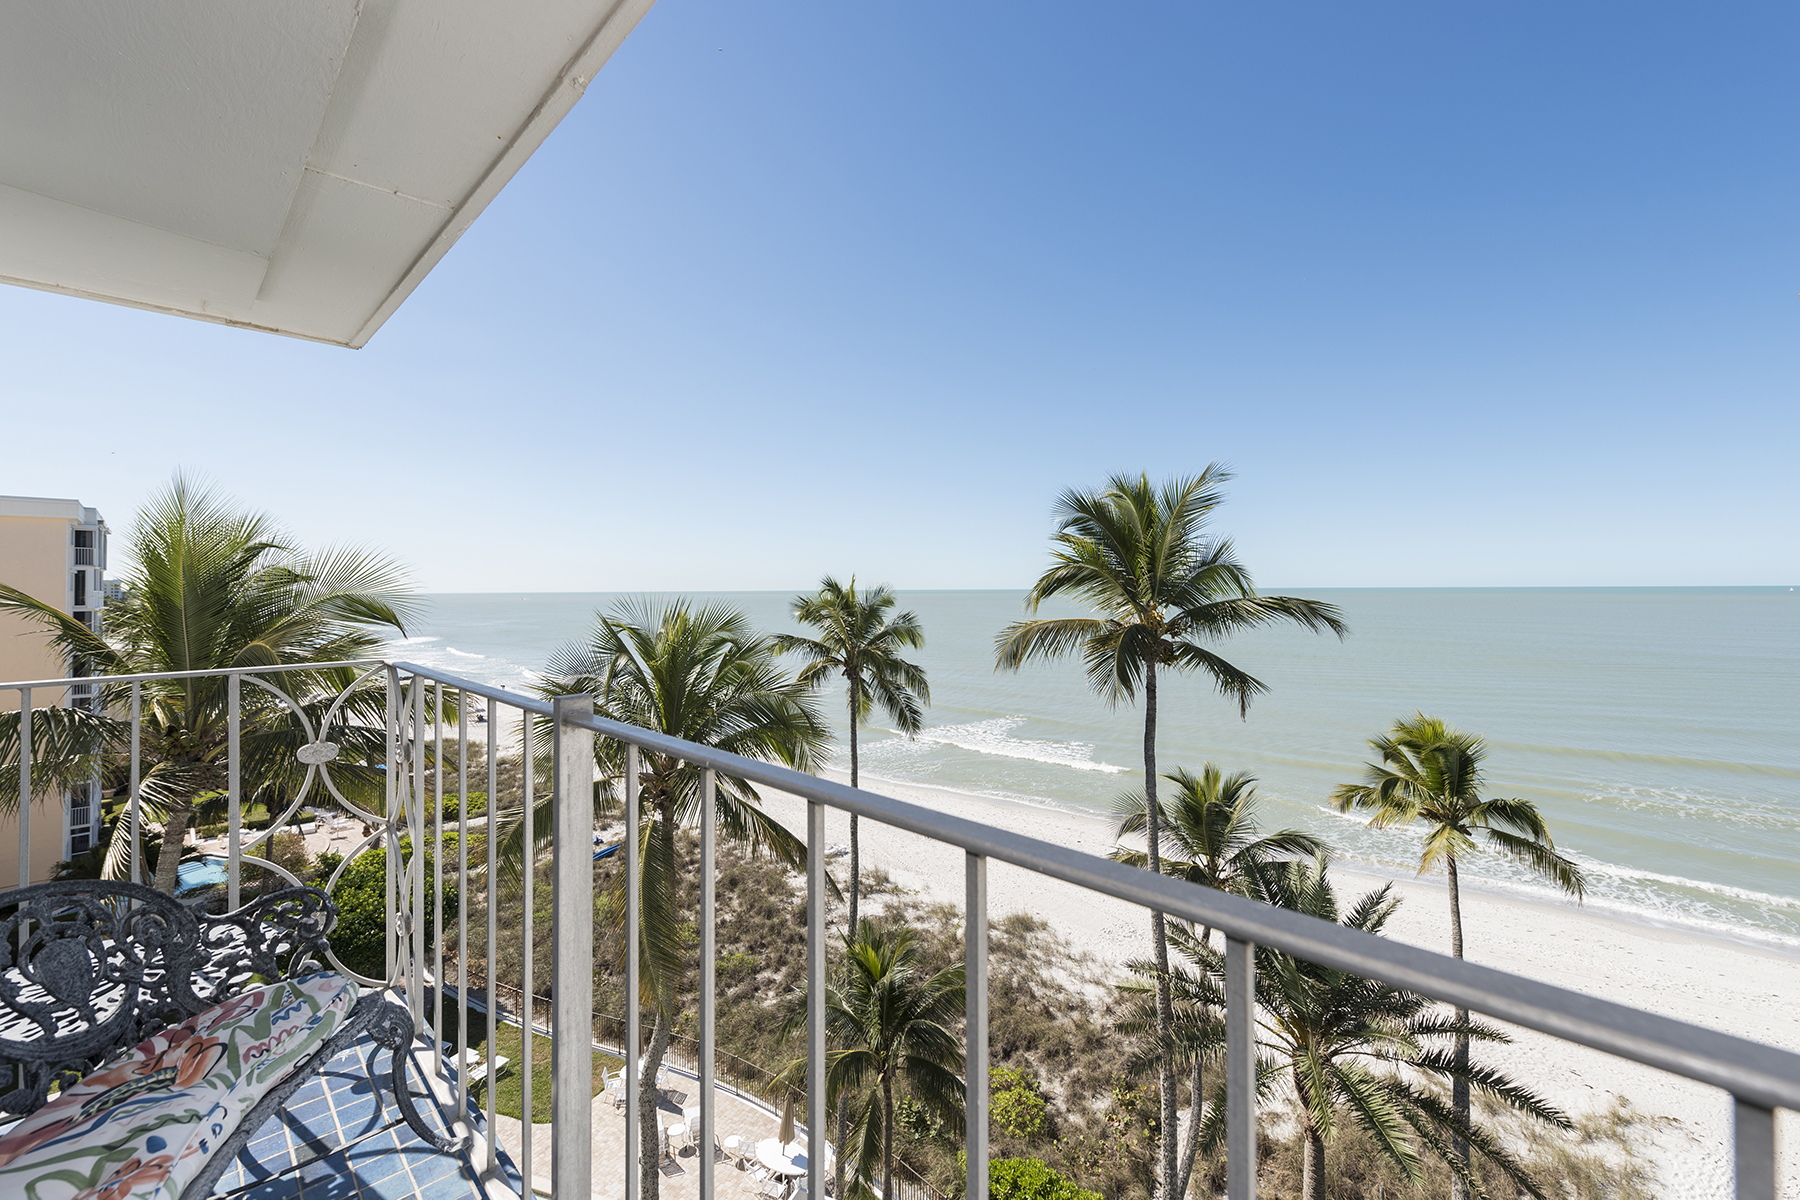 Condominium for Sale at MOORINGS - CARRIAGE CLUB 2011 Gulf Shore Blvd N 61, Naples, Florida 34102 United States